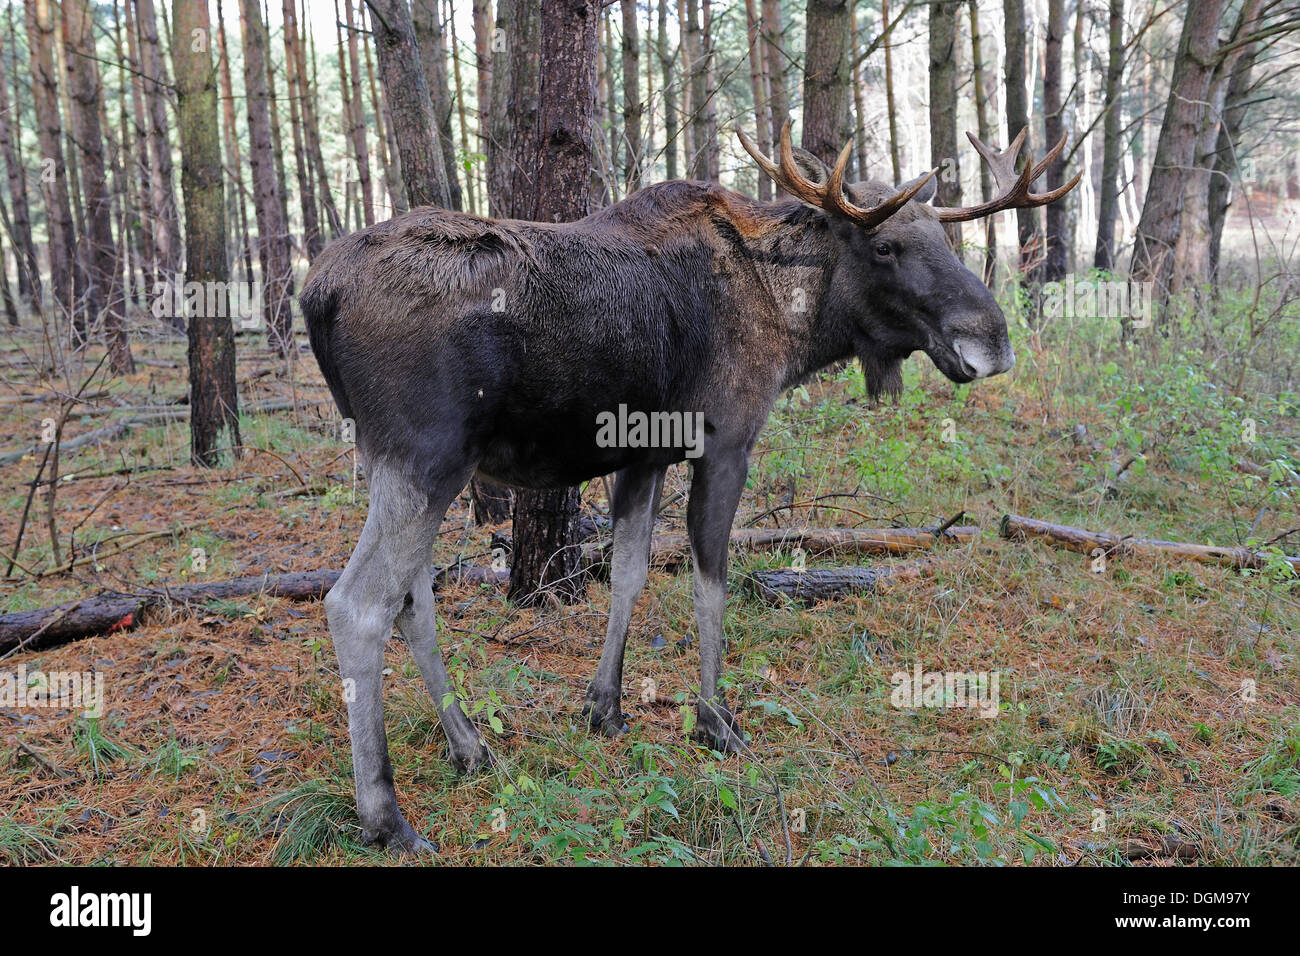 Moose (Alces alces) in its natural environment - Stock Image